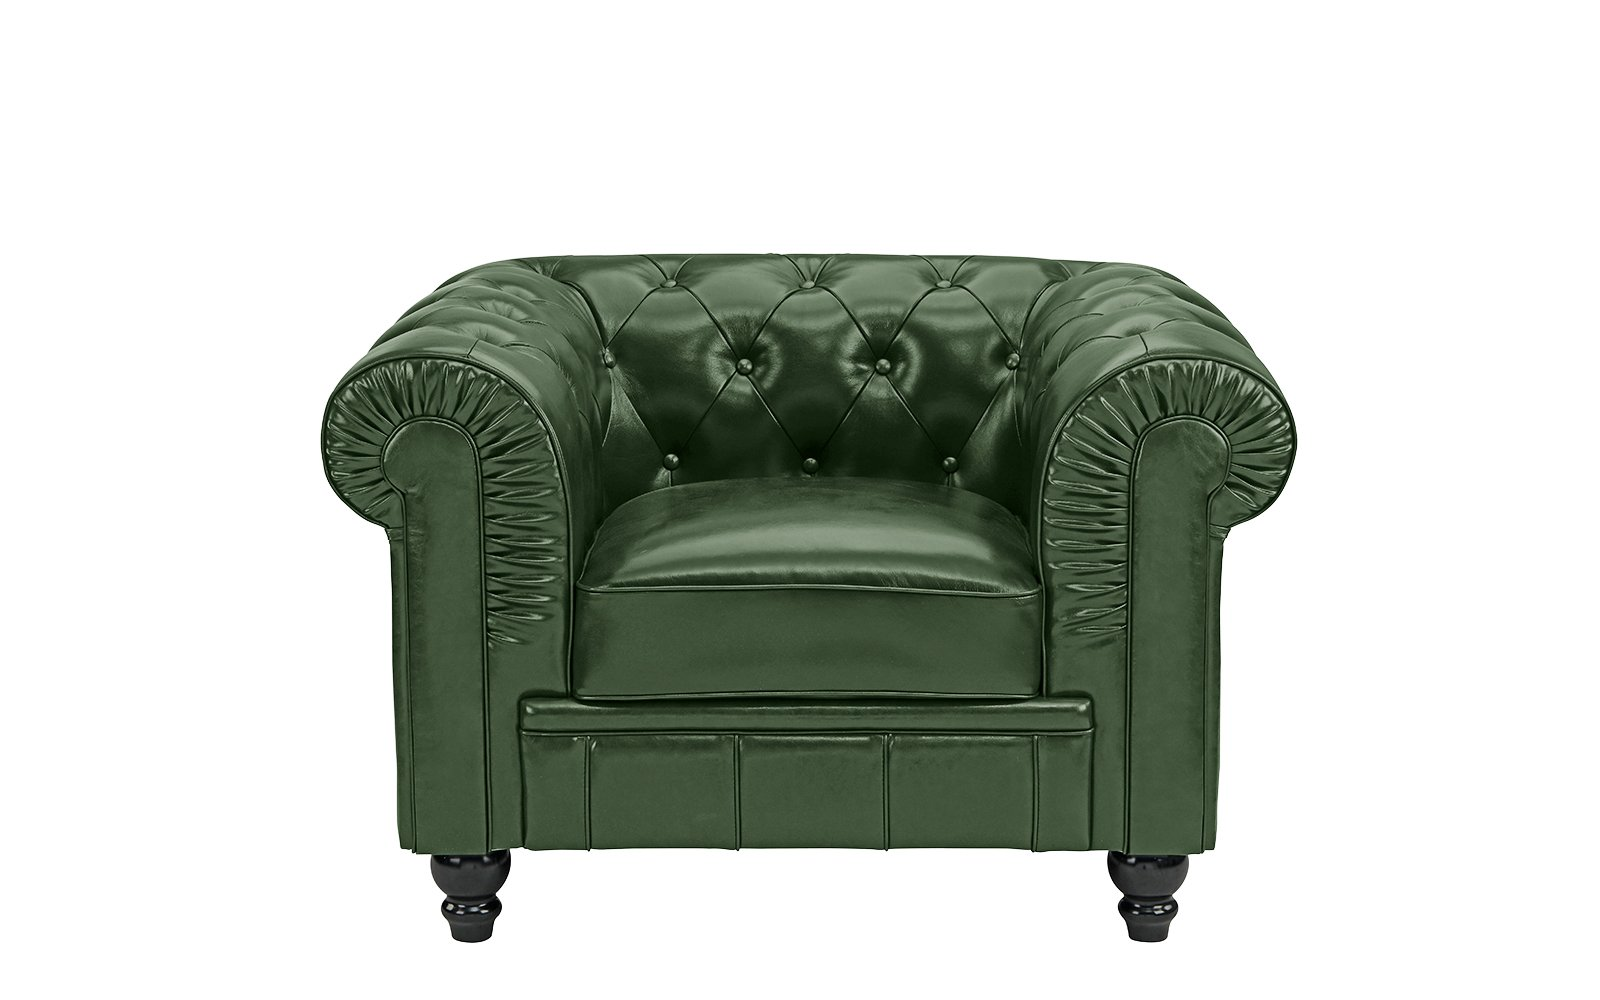 Image Is Loading Classic Chesterfield Scroll Arm Tufted Leather Accent Chair